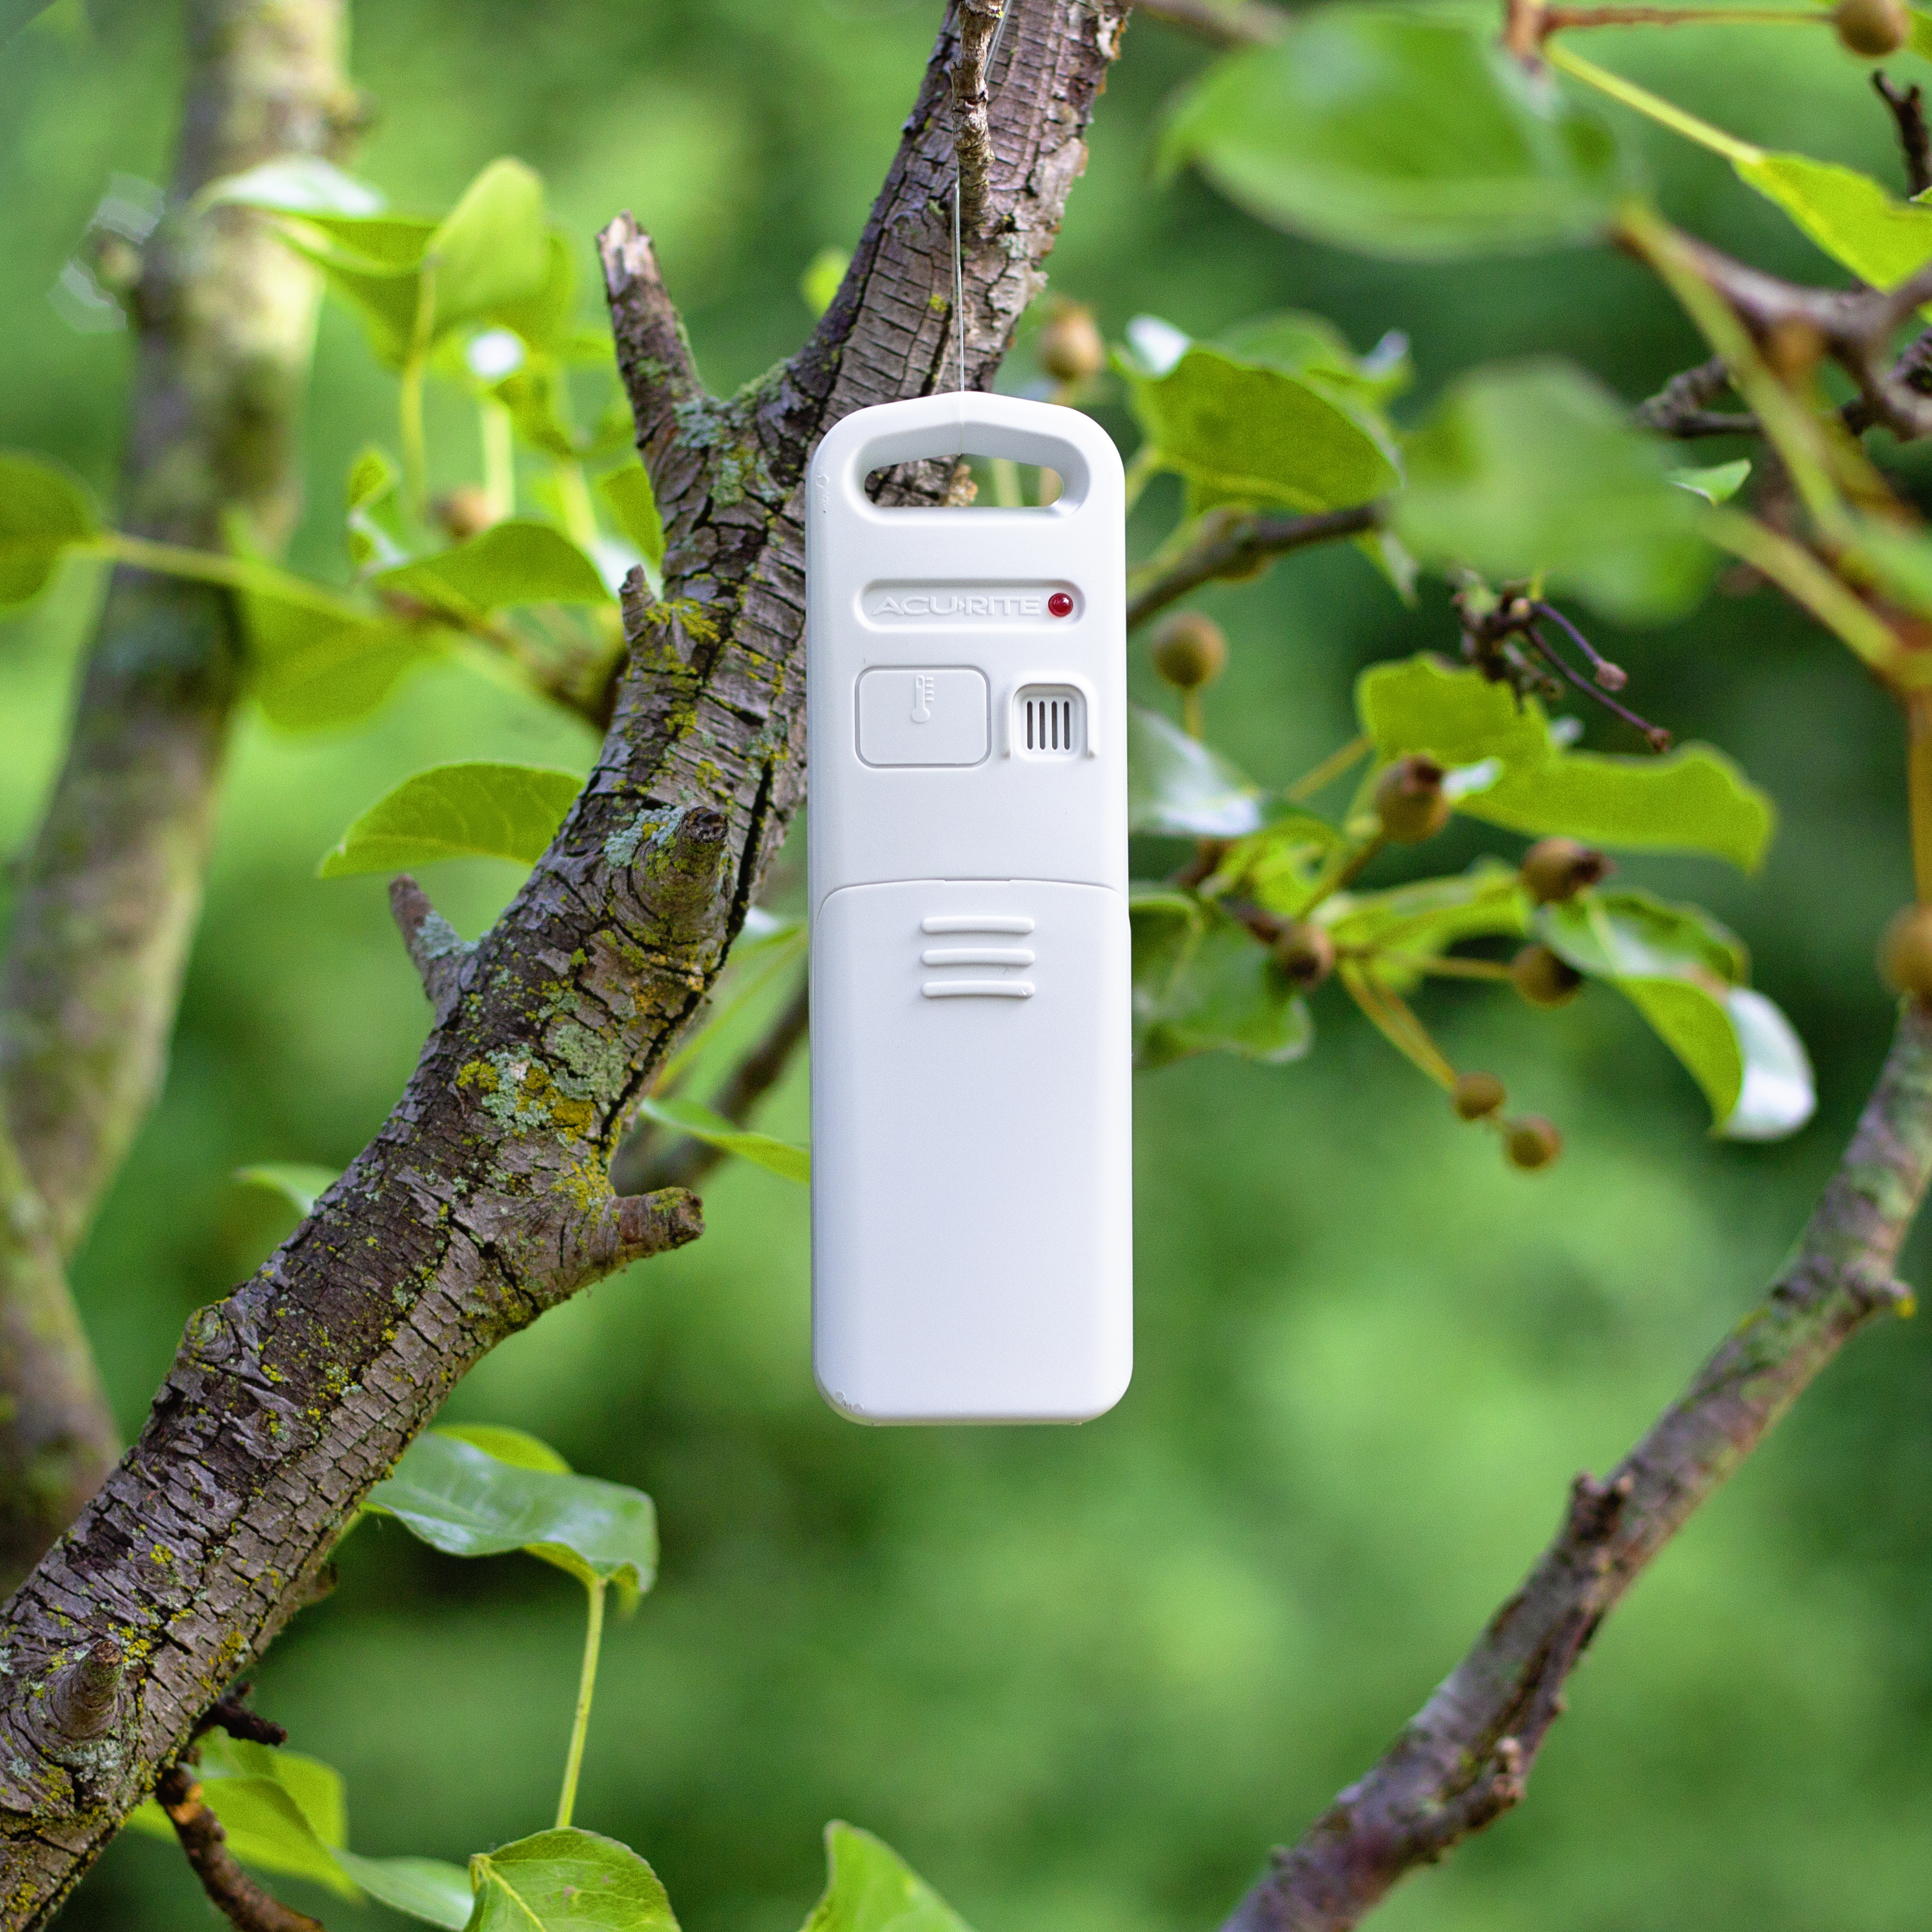 Sensor hanging in a tree